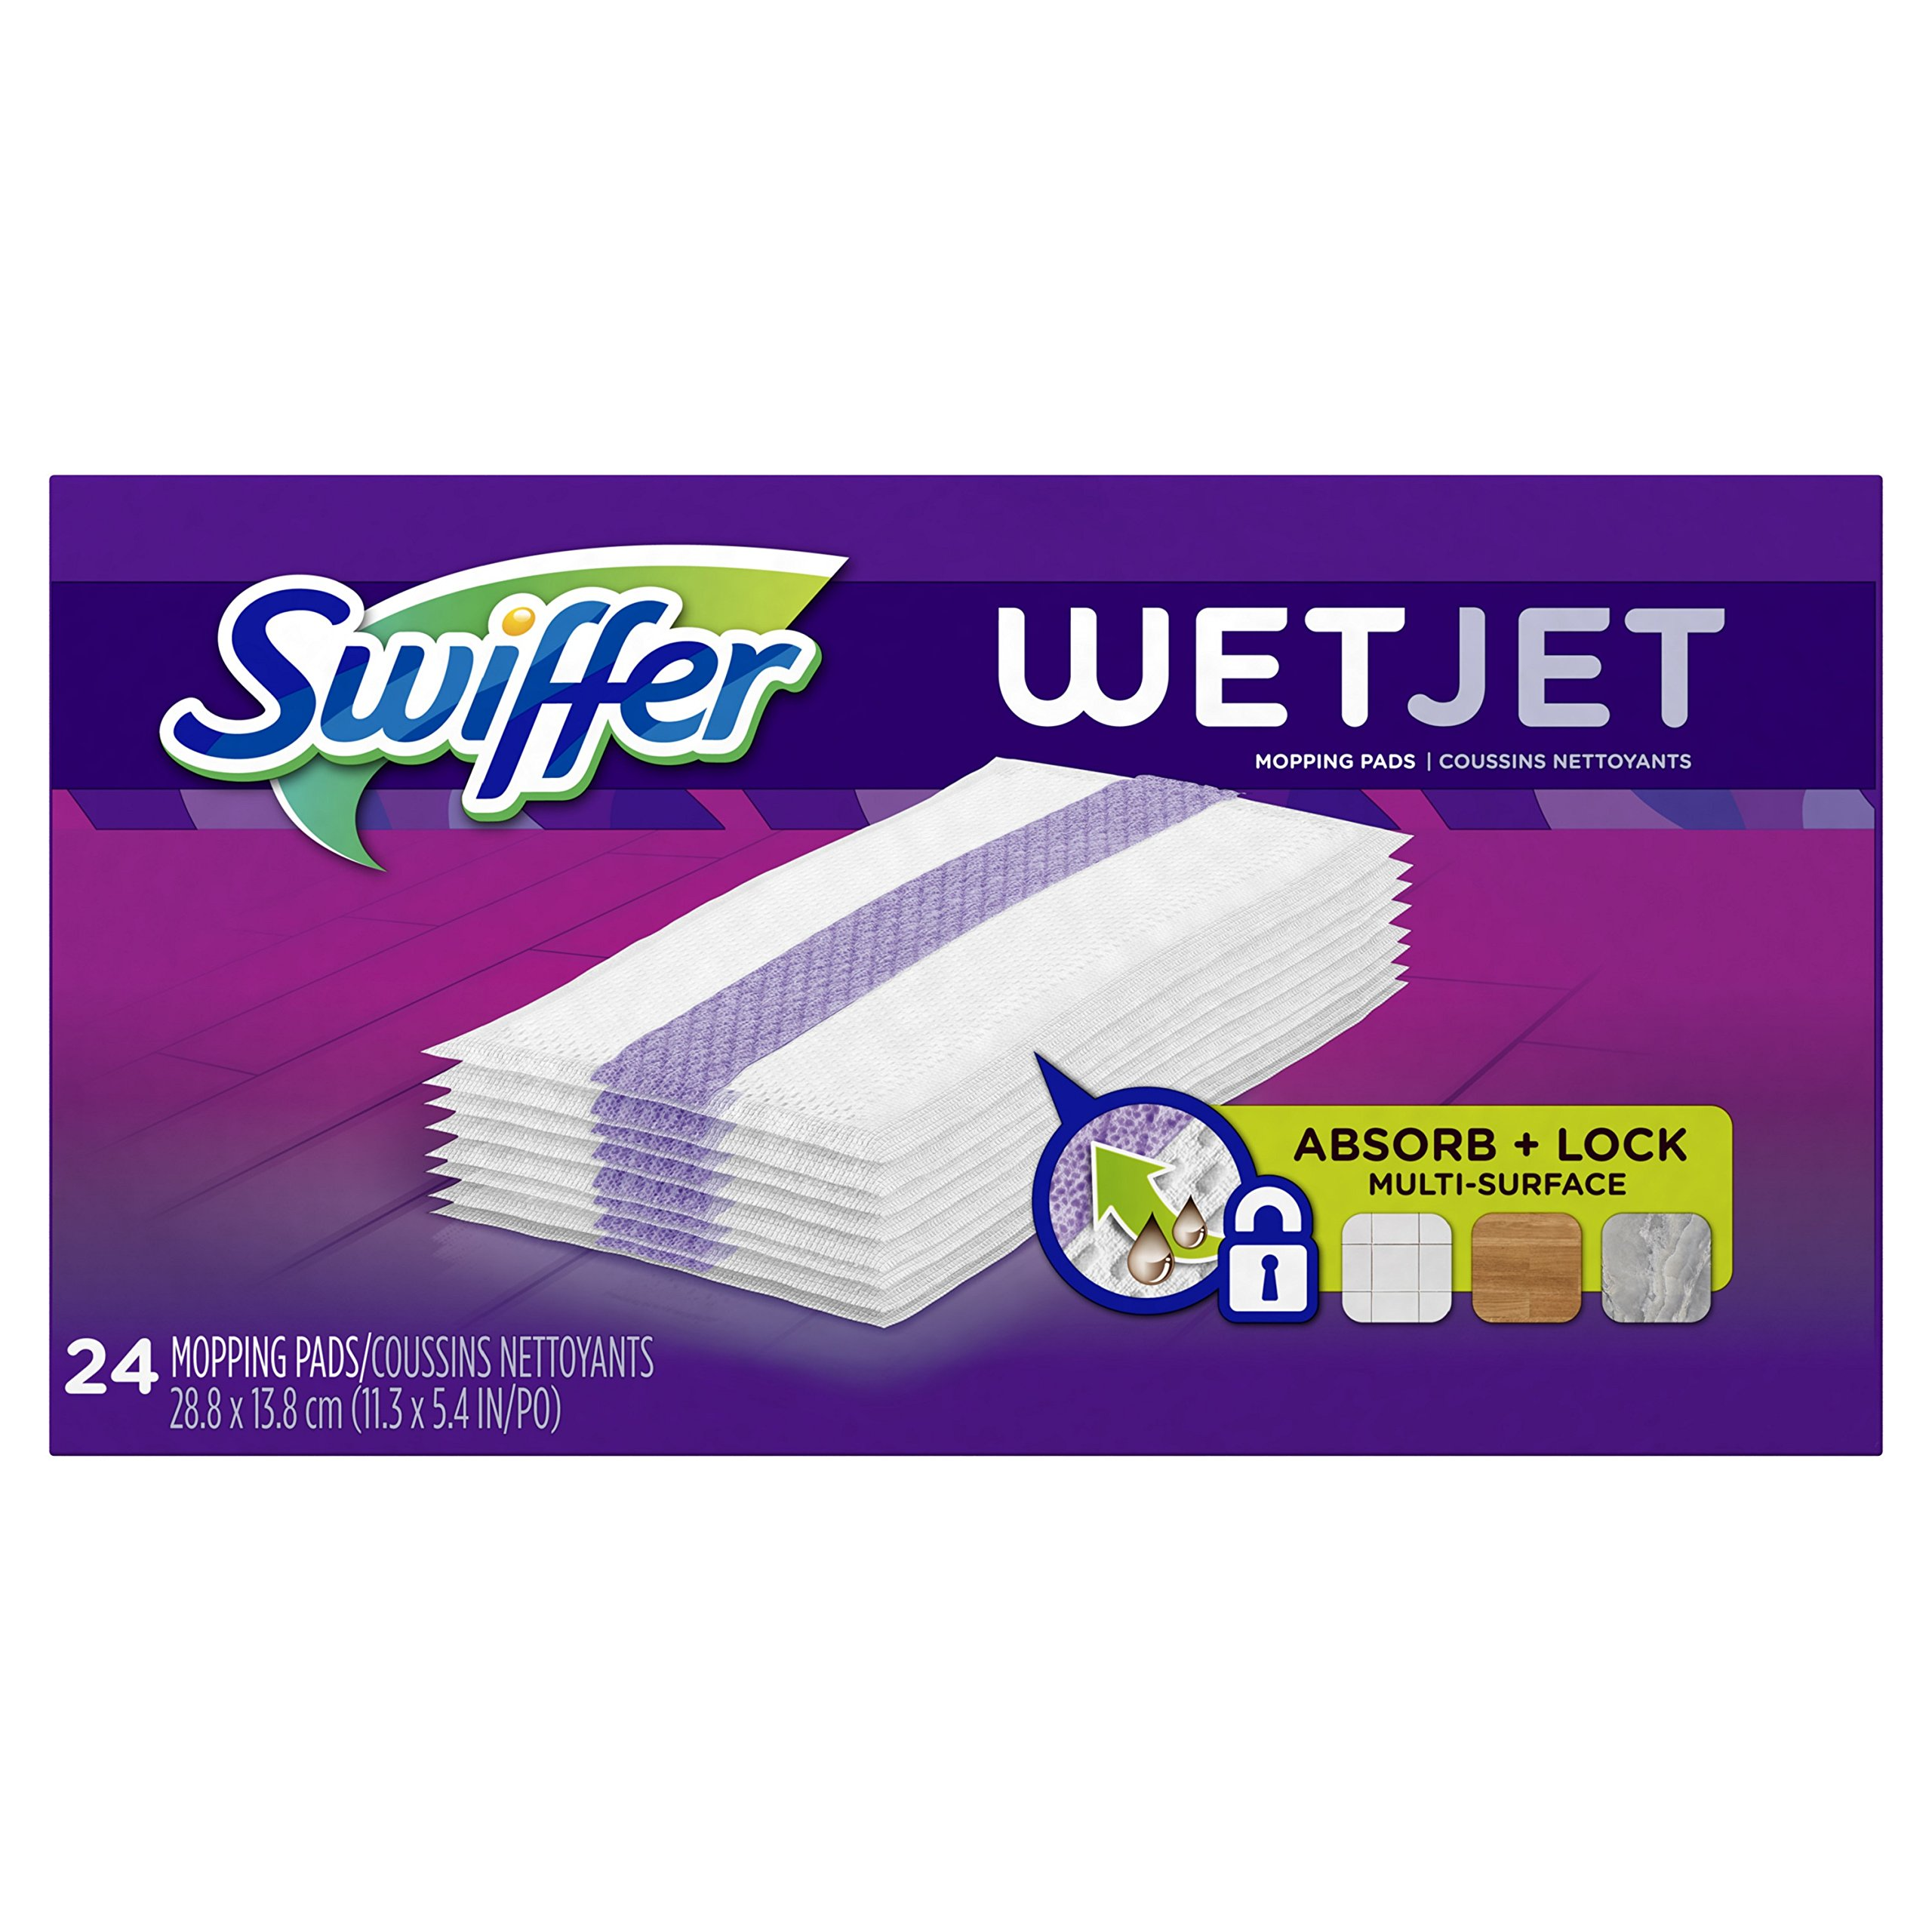 Swiffer WetJet Hardwood Floor Cleaner Spray Mop Pad Refill, Multi Surface, 24 Count (Packaging May Vary)